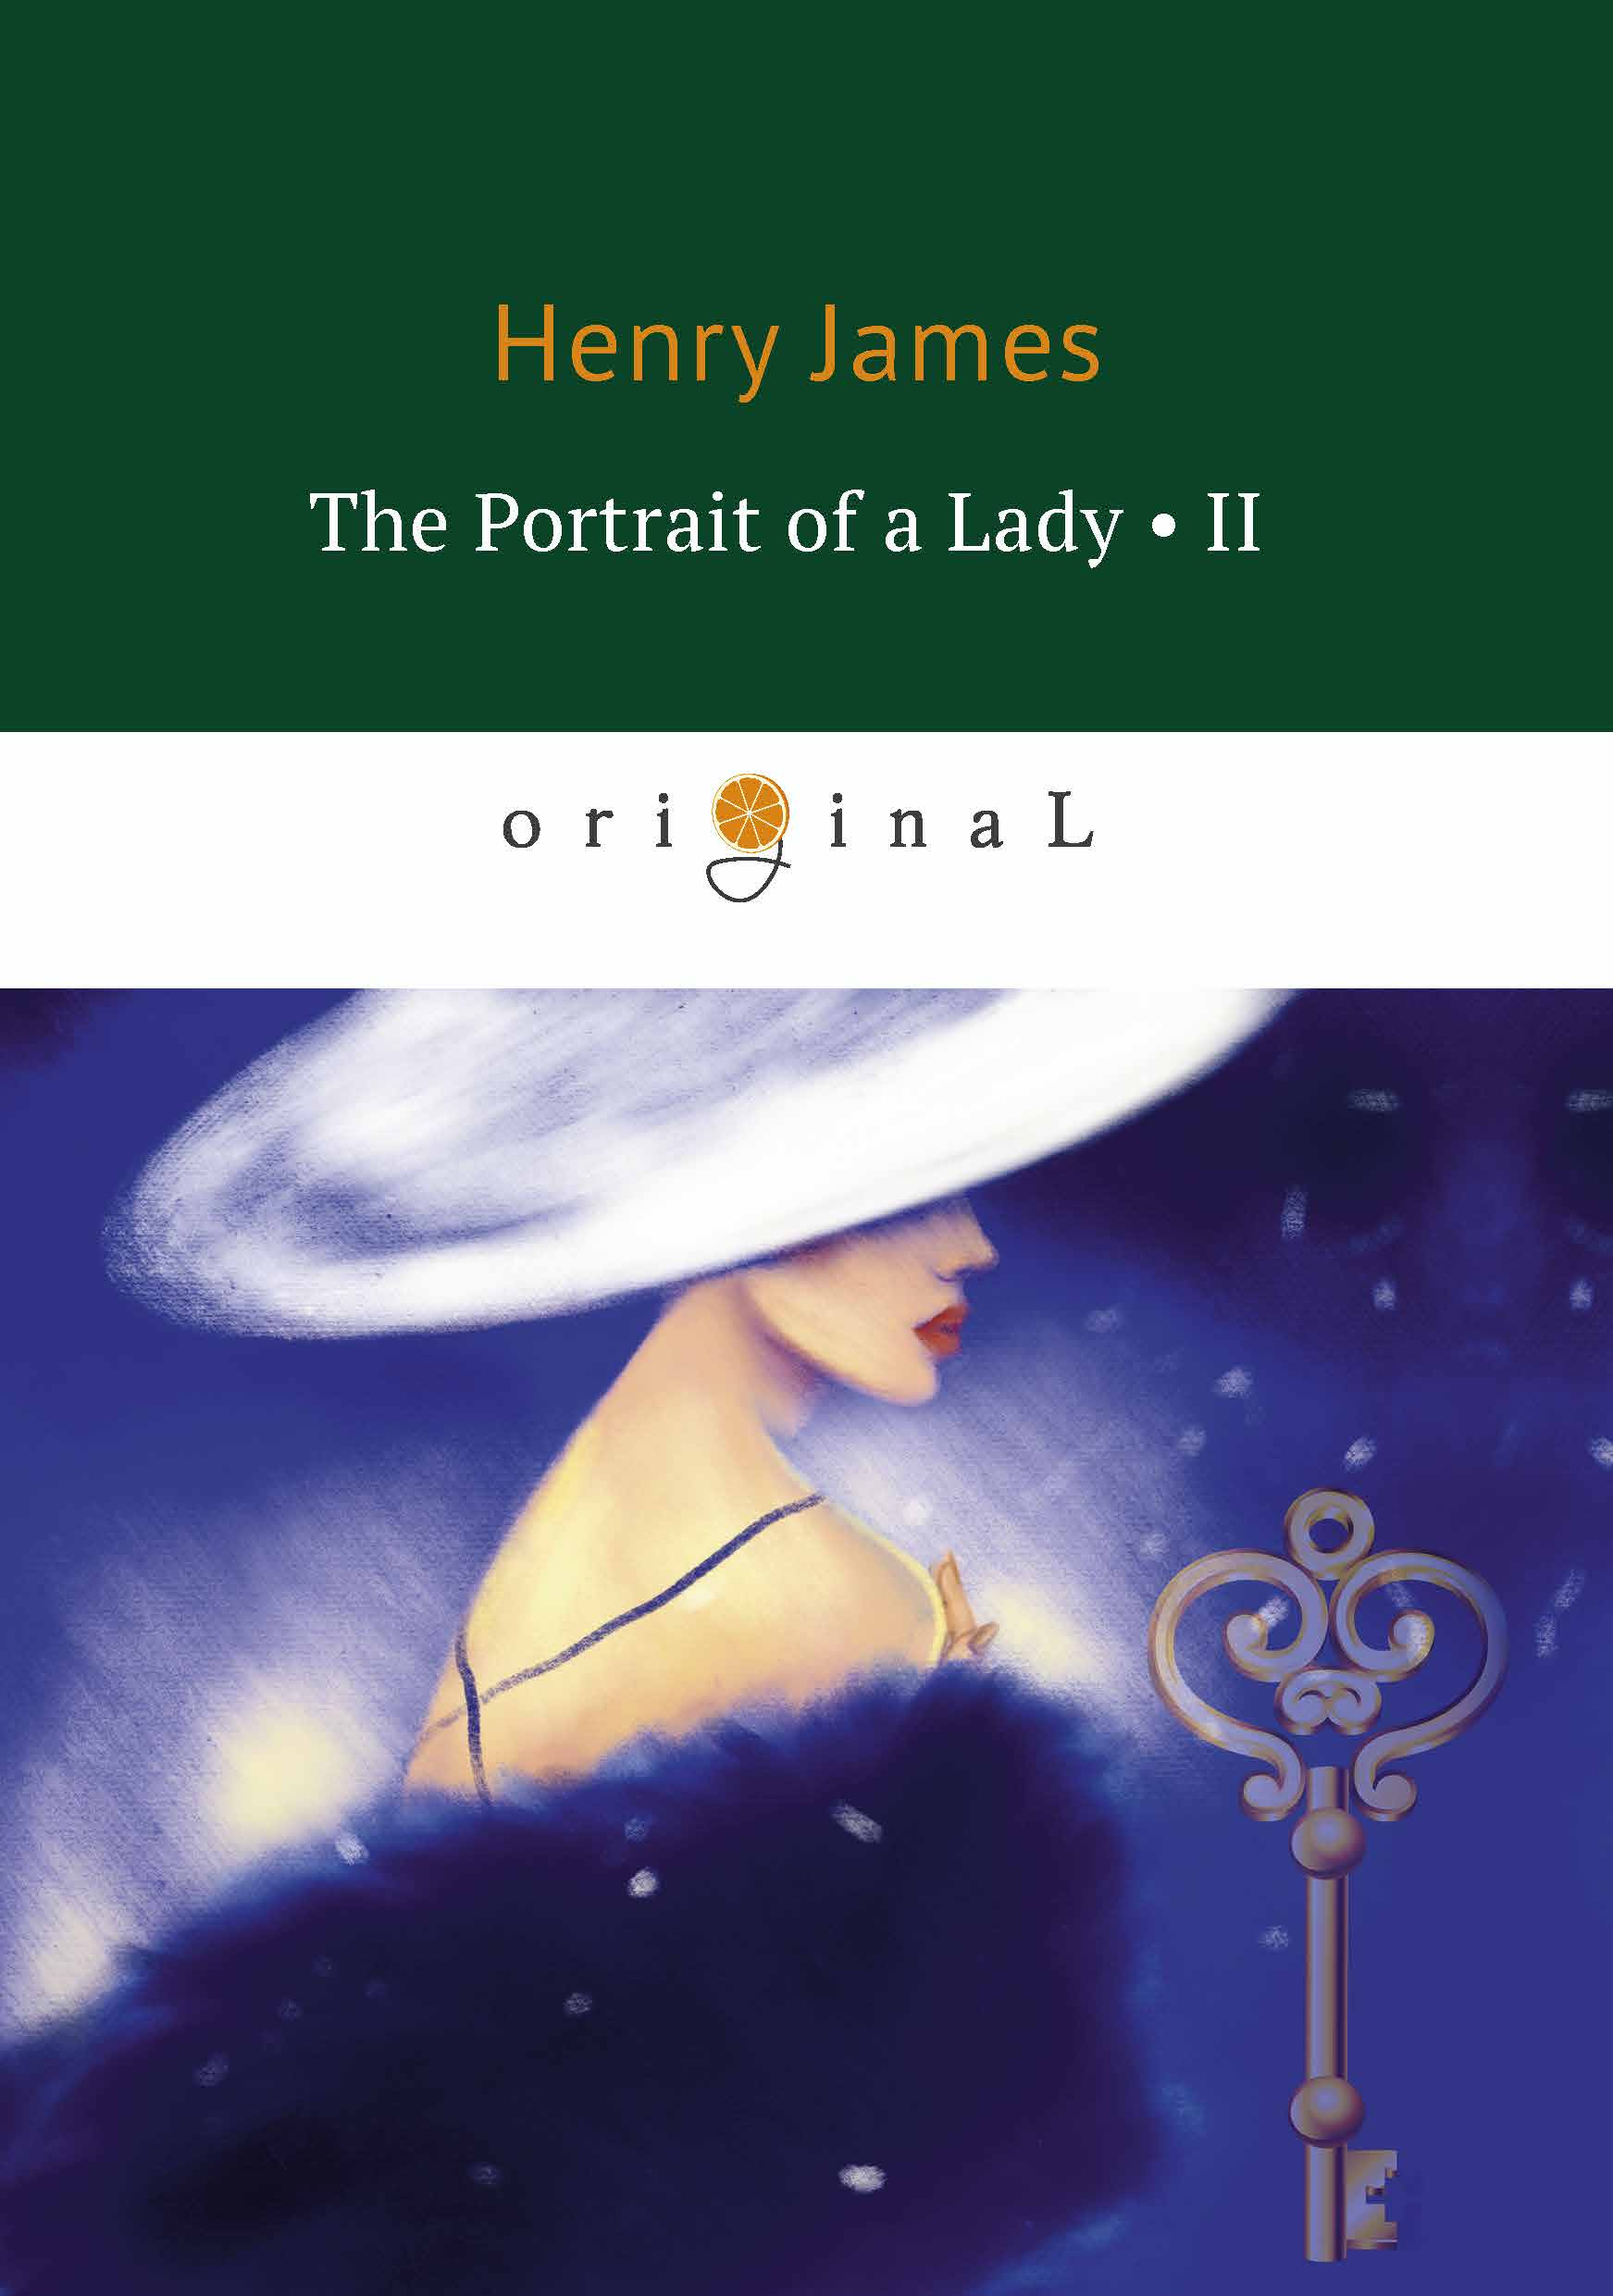 Henry James The Portrait of a Lady II greg zacharias w a companion to henry james